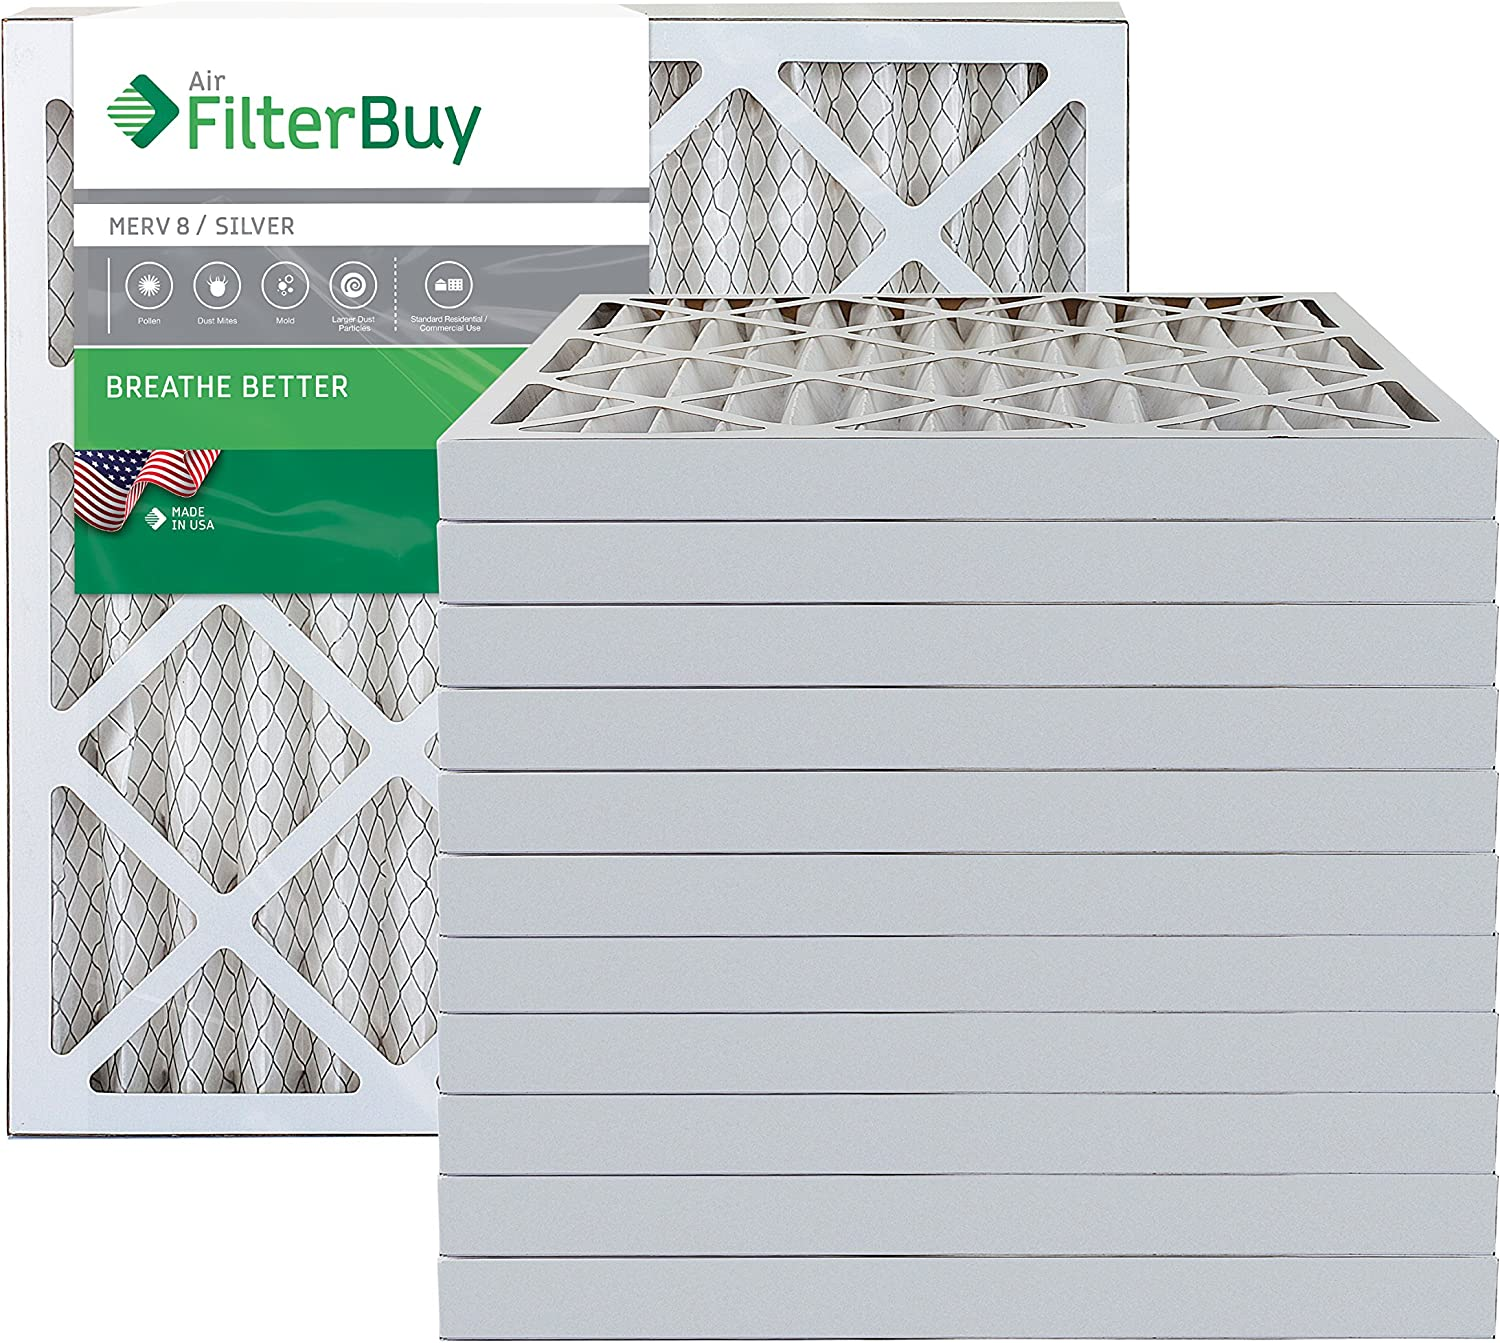 FilterBuy 20x22x2 MERV 8 Pleated AC Furnace Air Filter, (Pack of 12 Filters), 20x22x2 – Silver